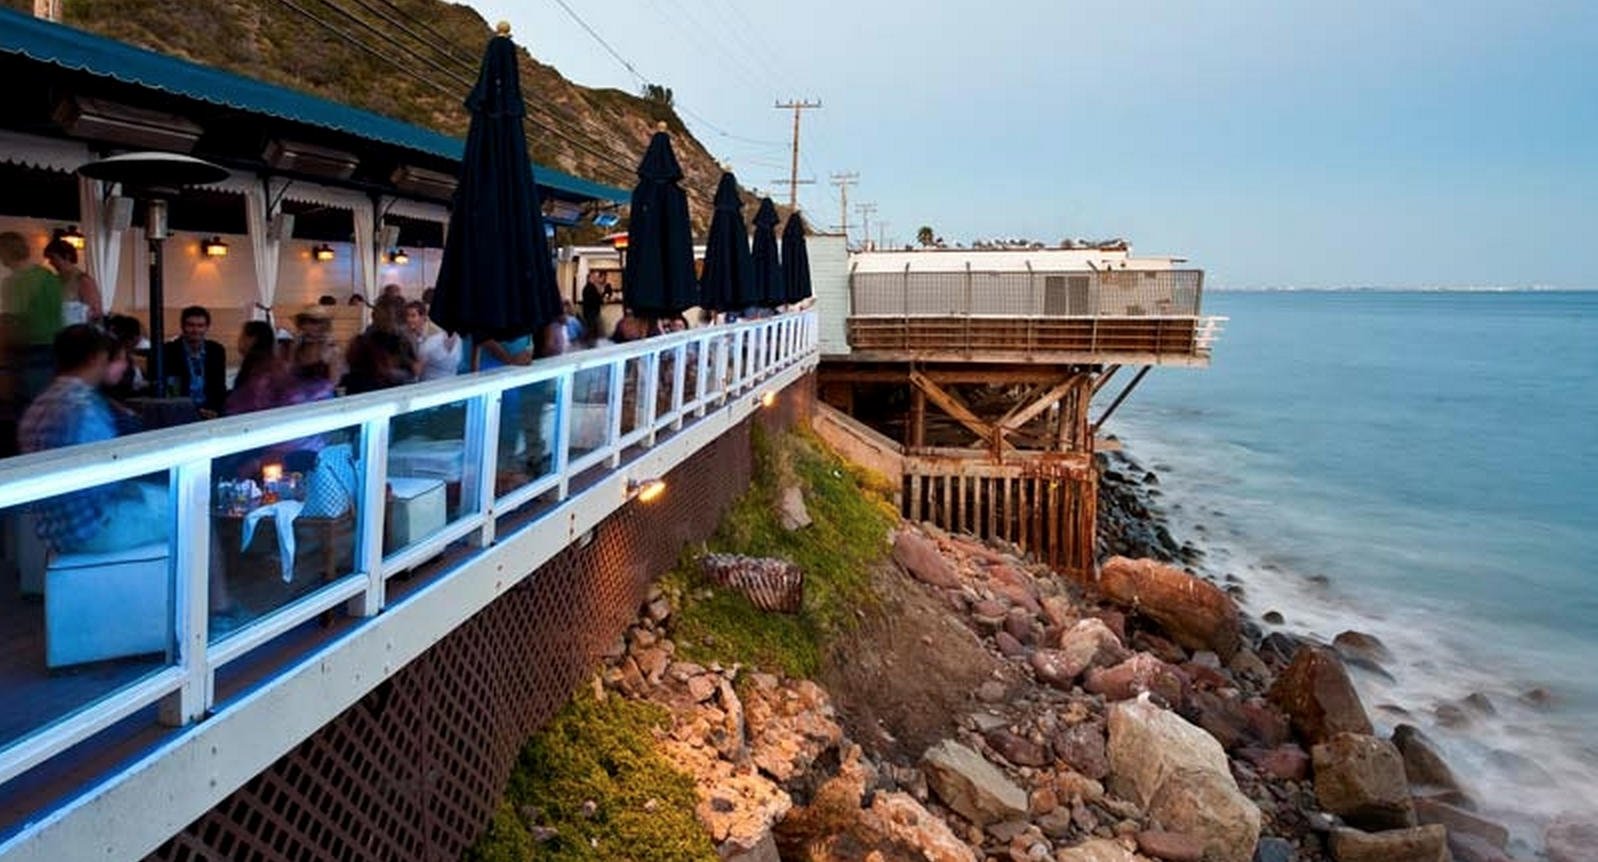 Best Seafood Near Laguna Beach